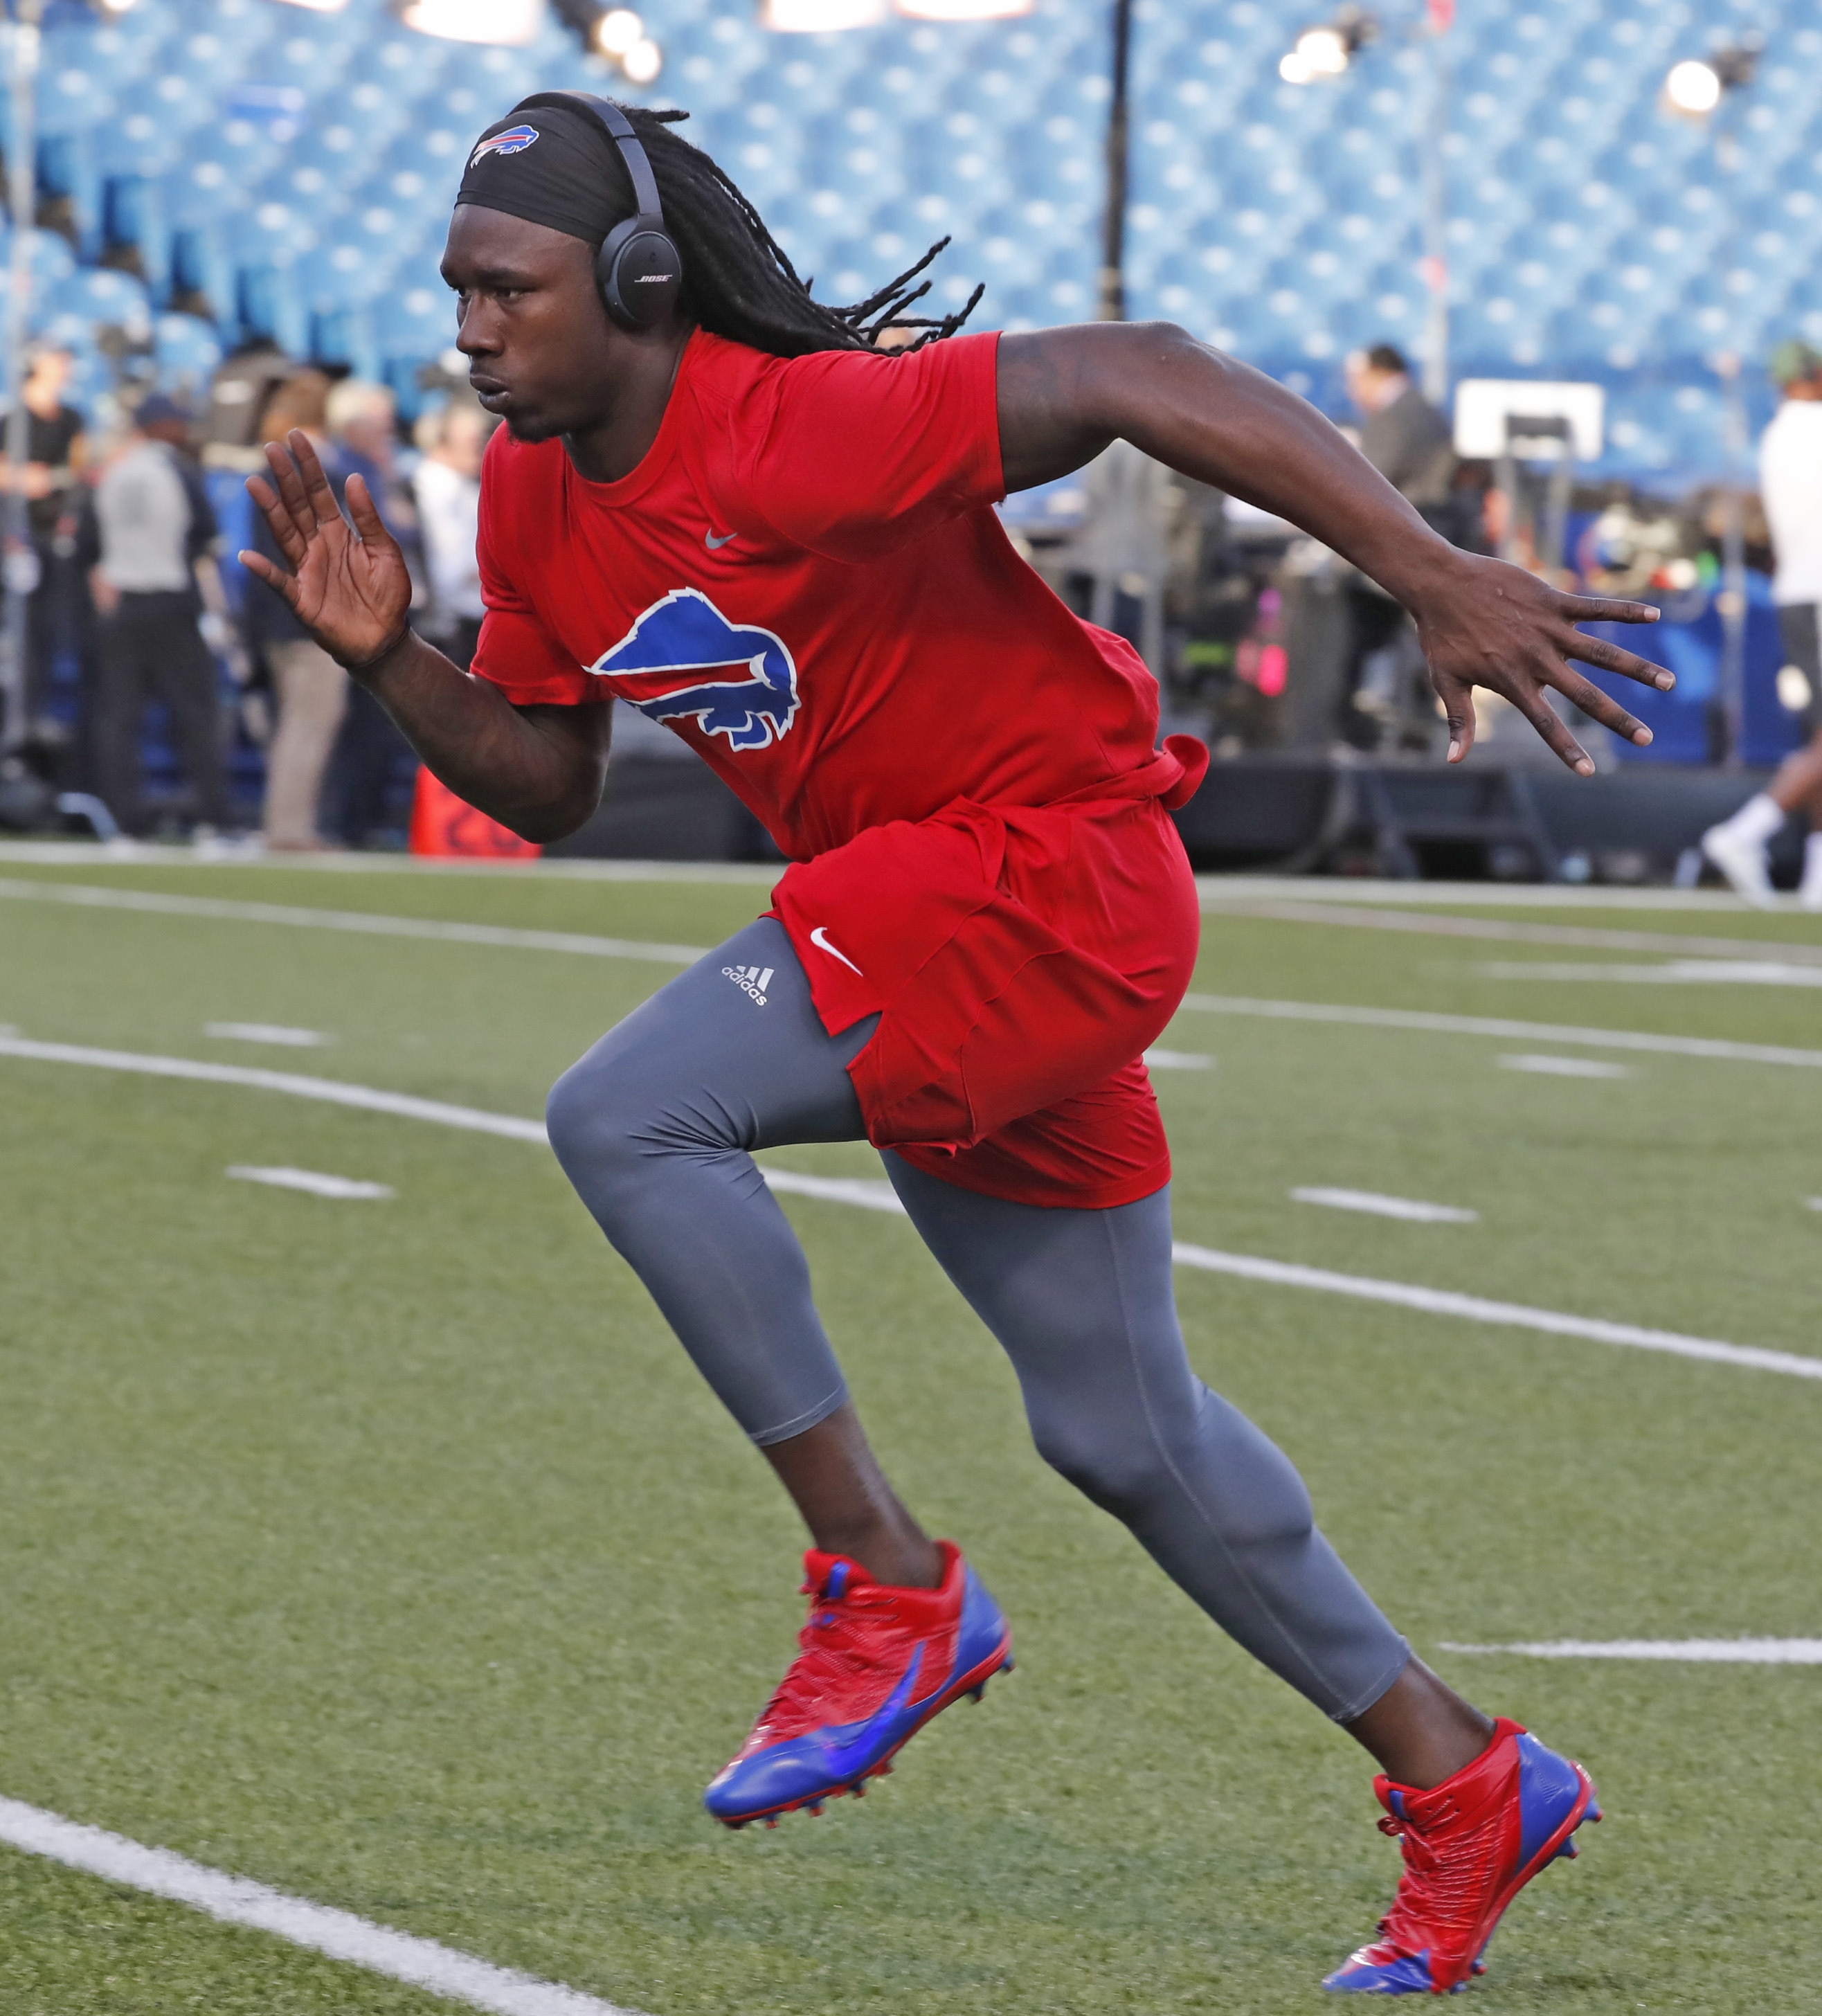 Sammy Watkins works out on the field prior to Thursday's game. (Harry Scull Jr./Buffalo News)